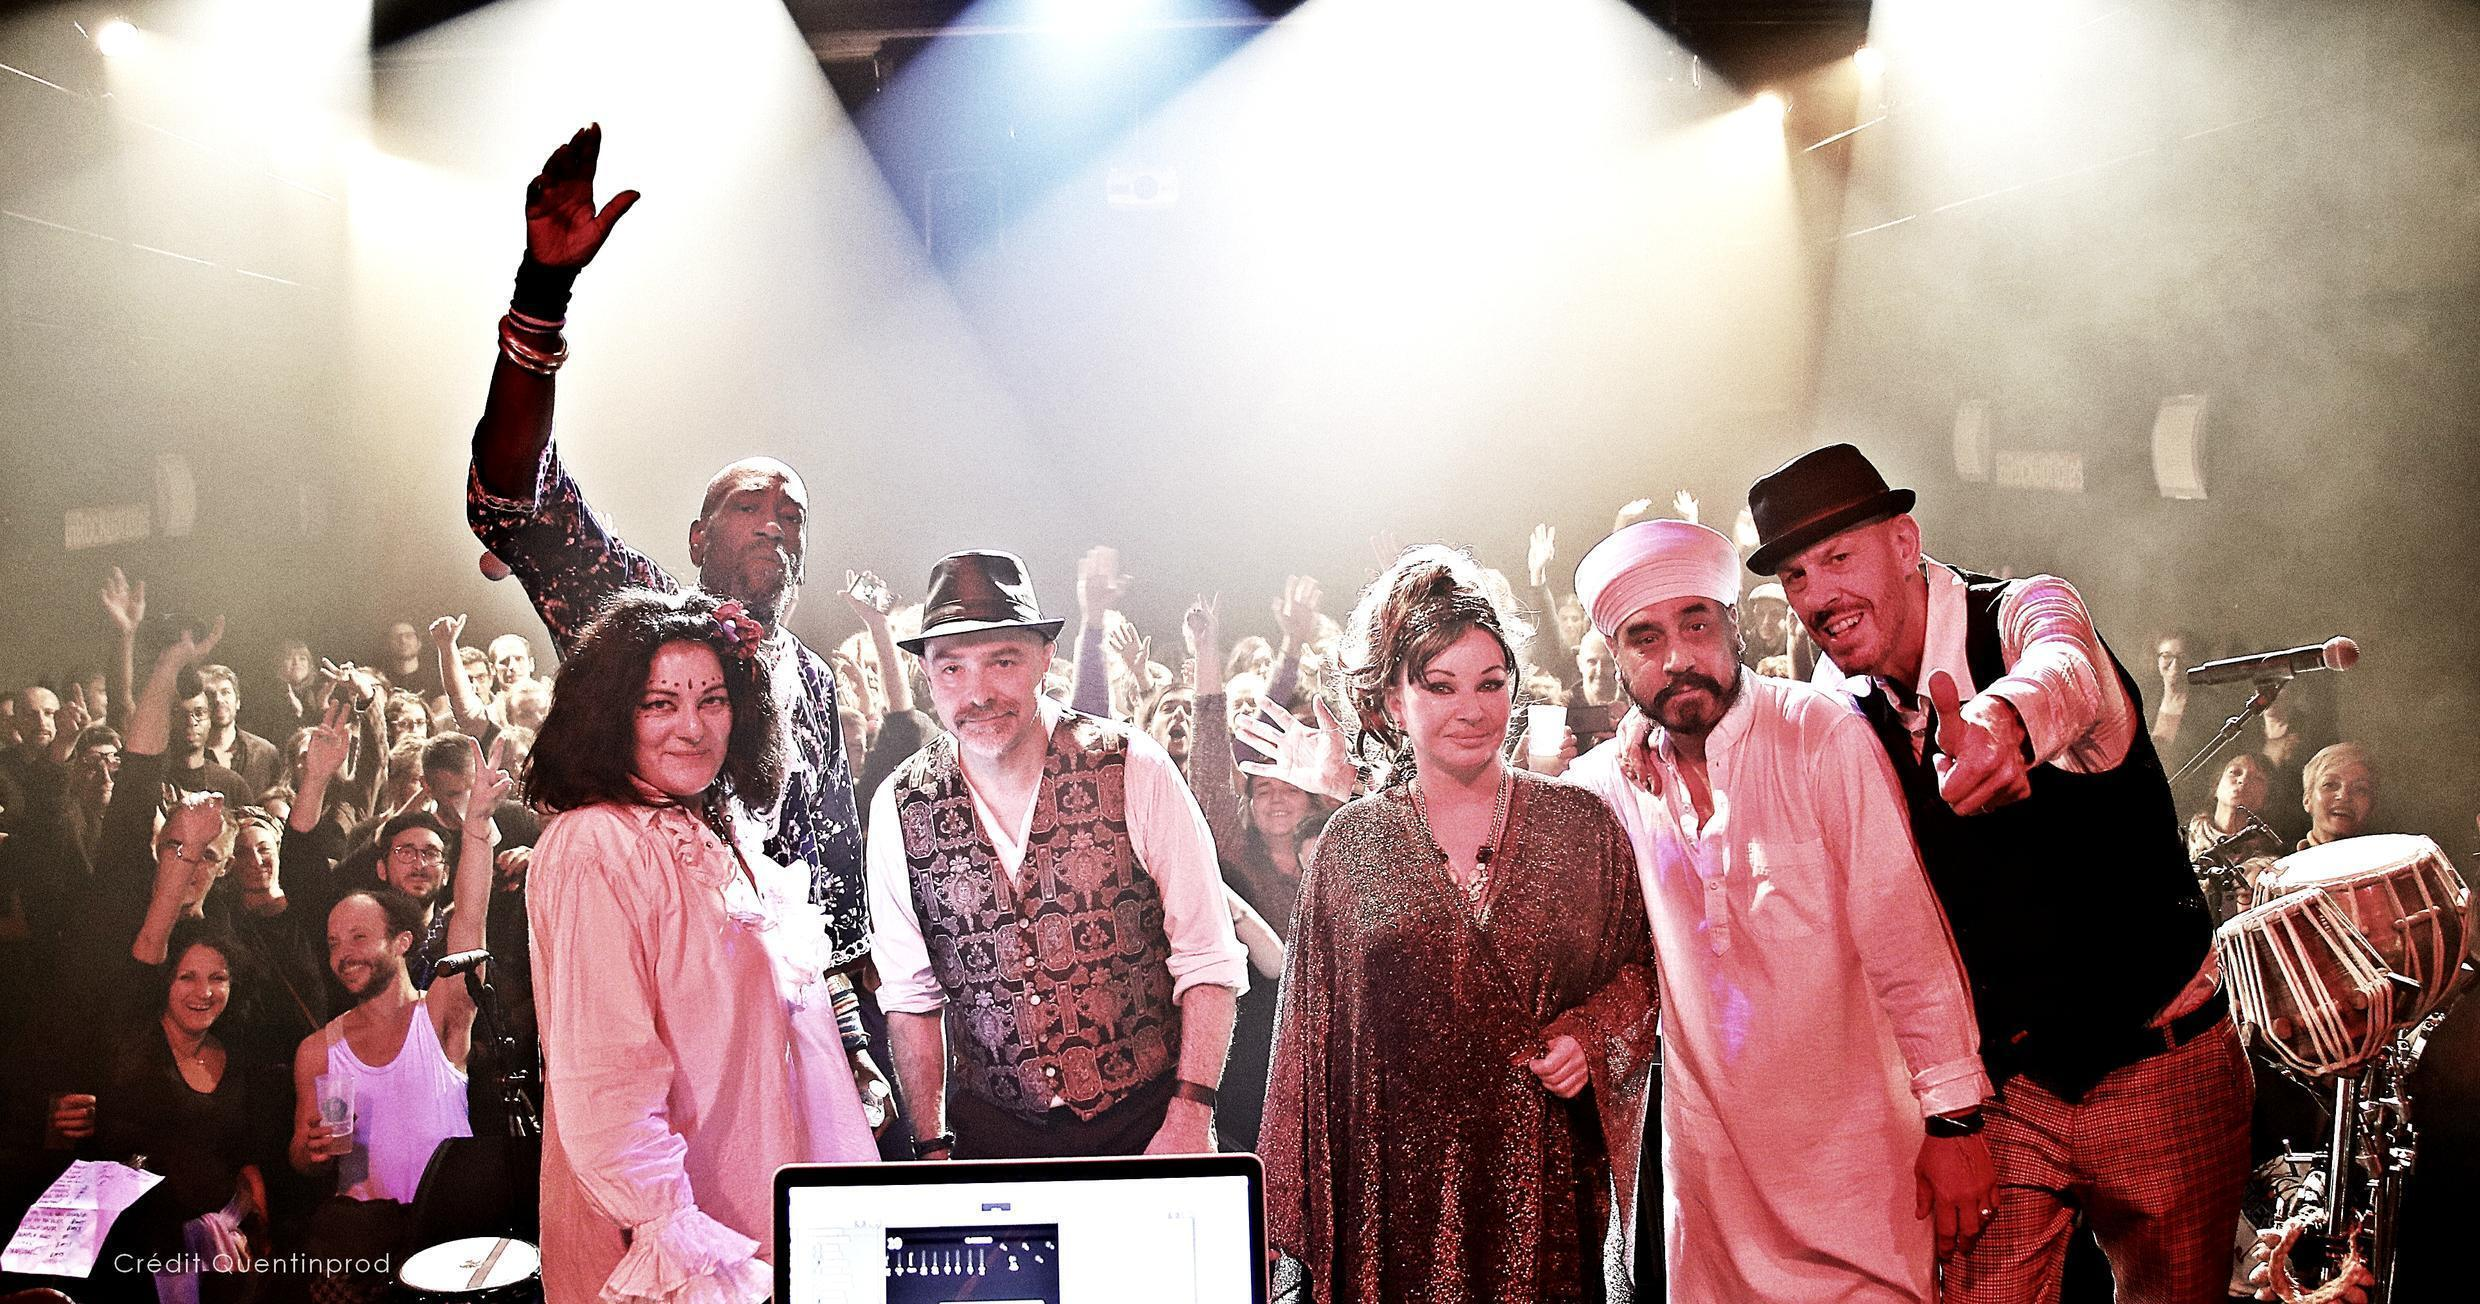 Transglobal Underground with Nathacha Atlas (c) at the Aventuriers festival on 13 December 2017